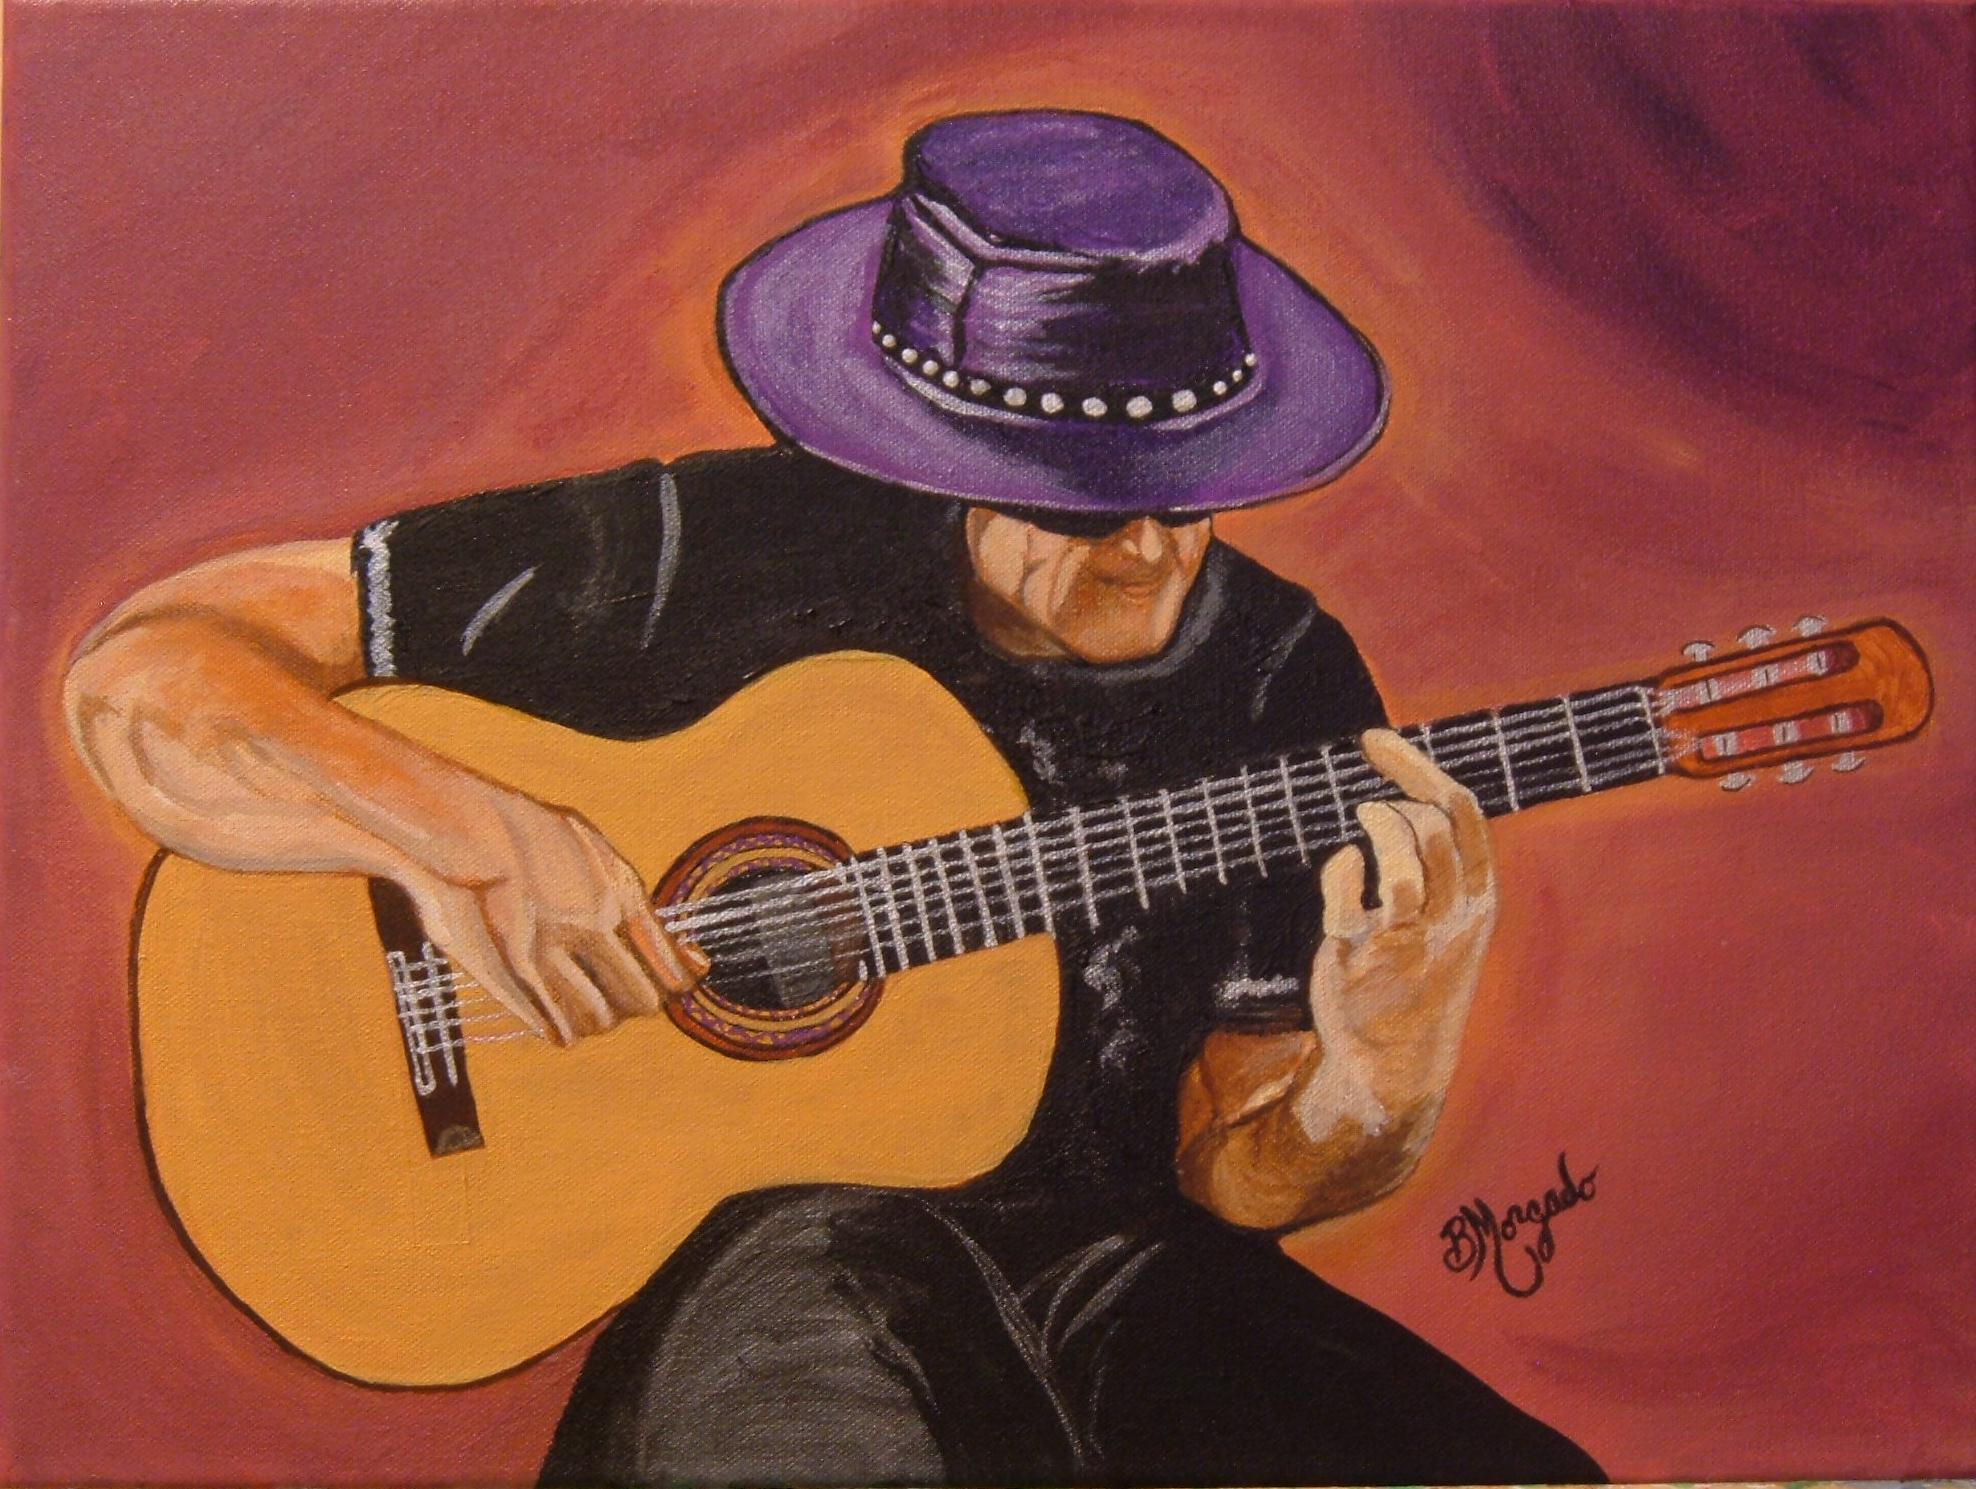 Guitarist Painting Flamenco Guitar | Bren...